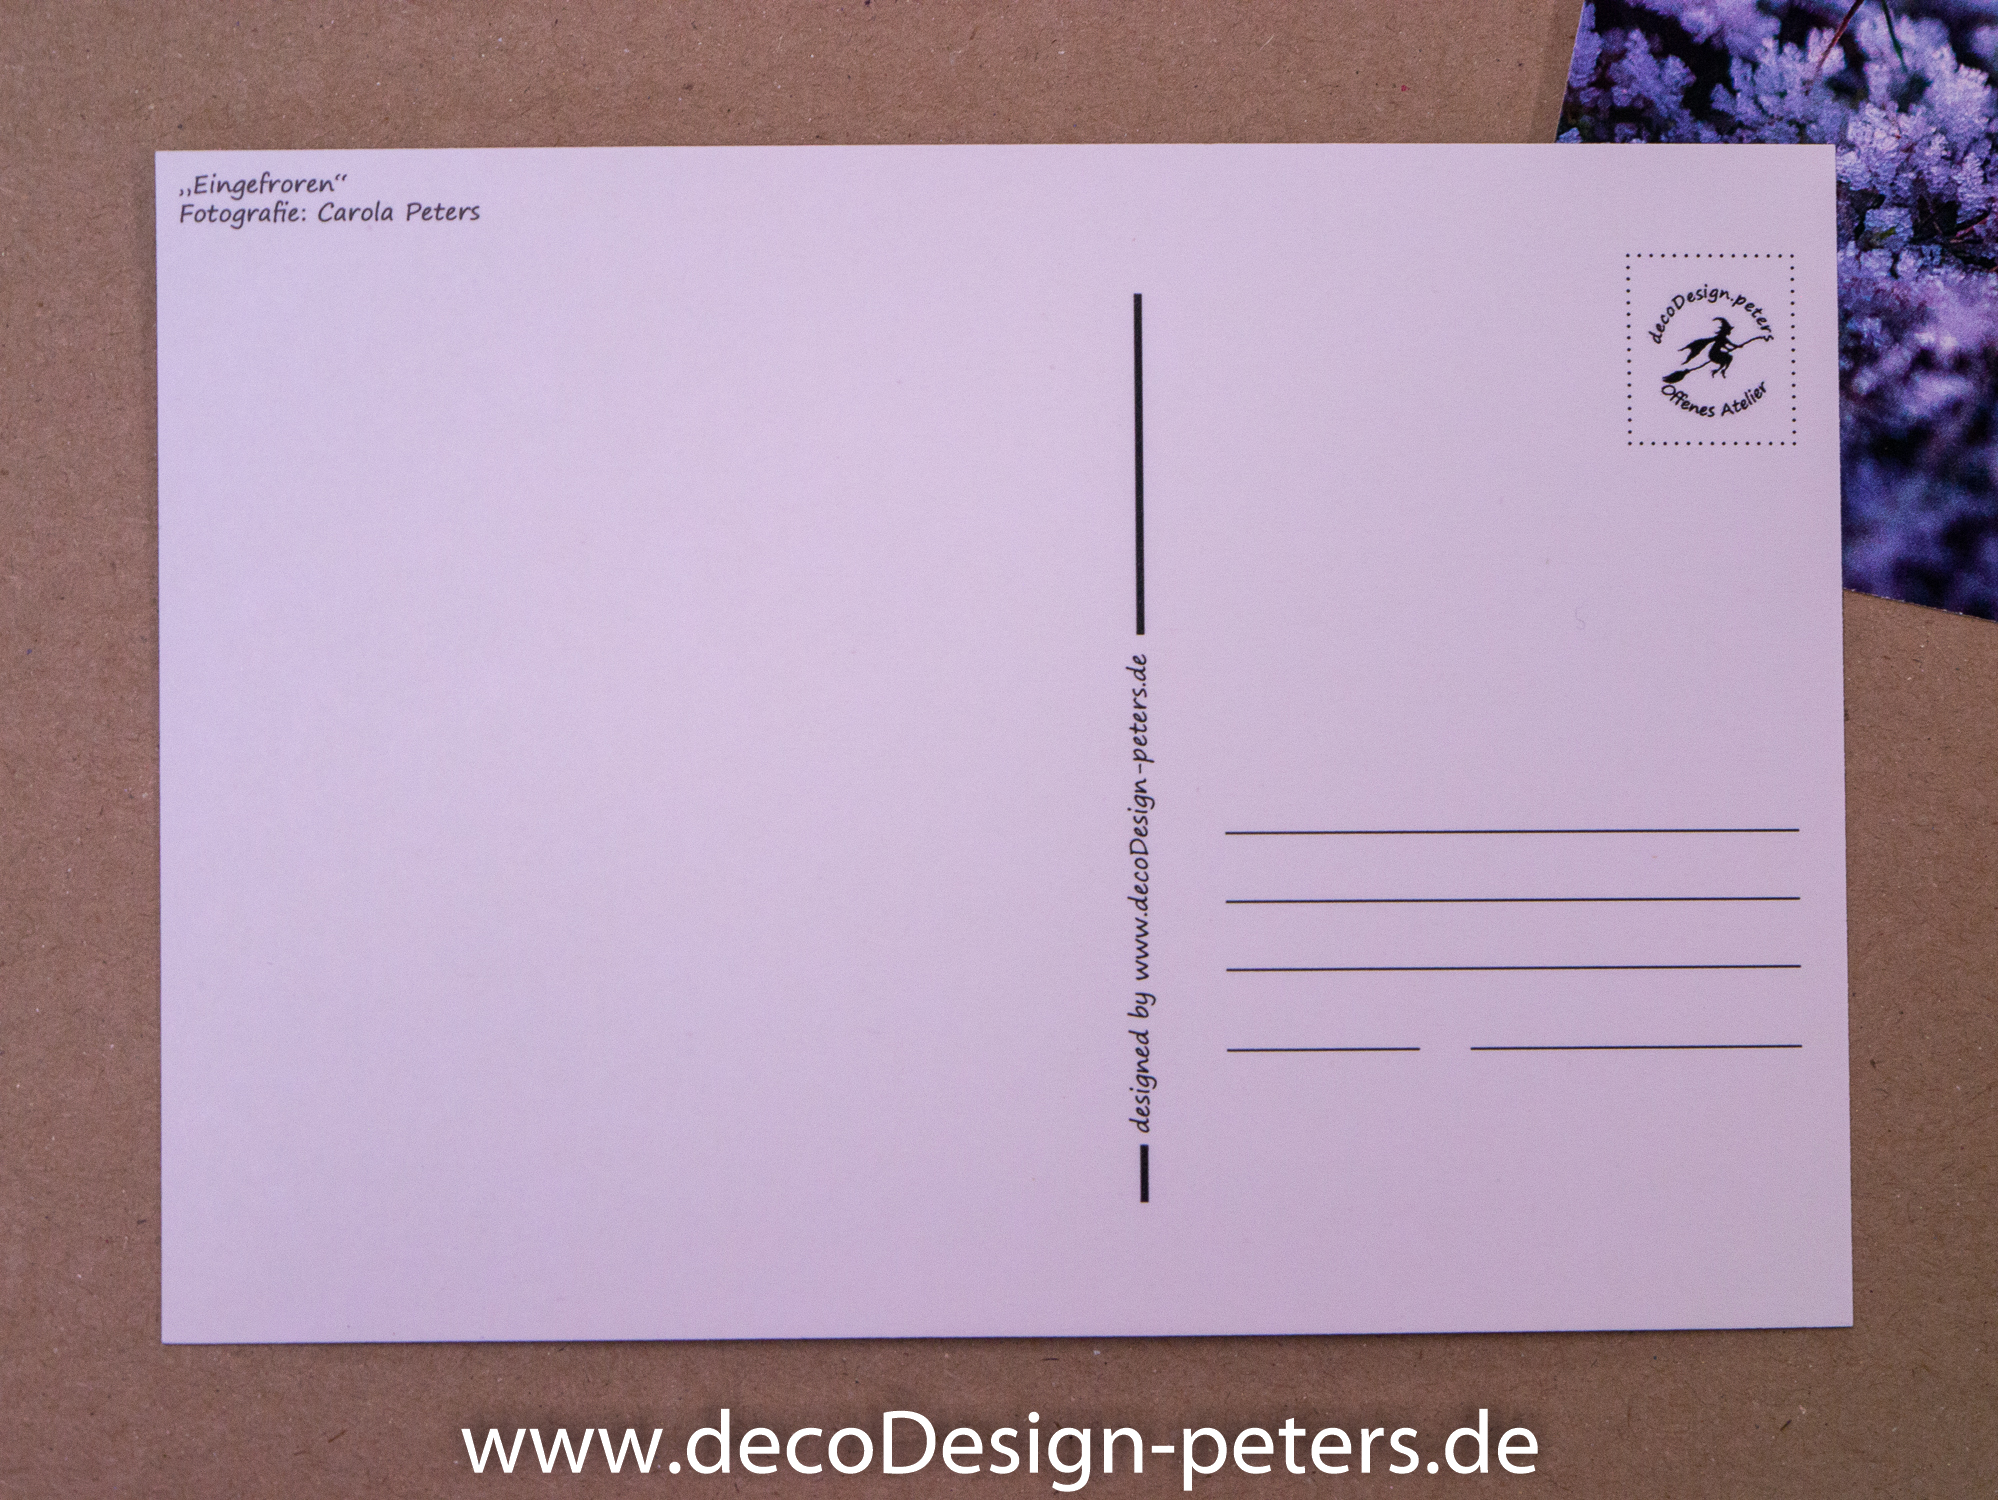 Postkarte Rückseite (c)decoDesign-peters.de